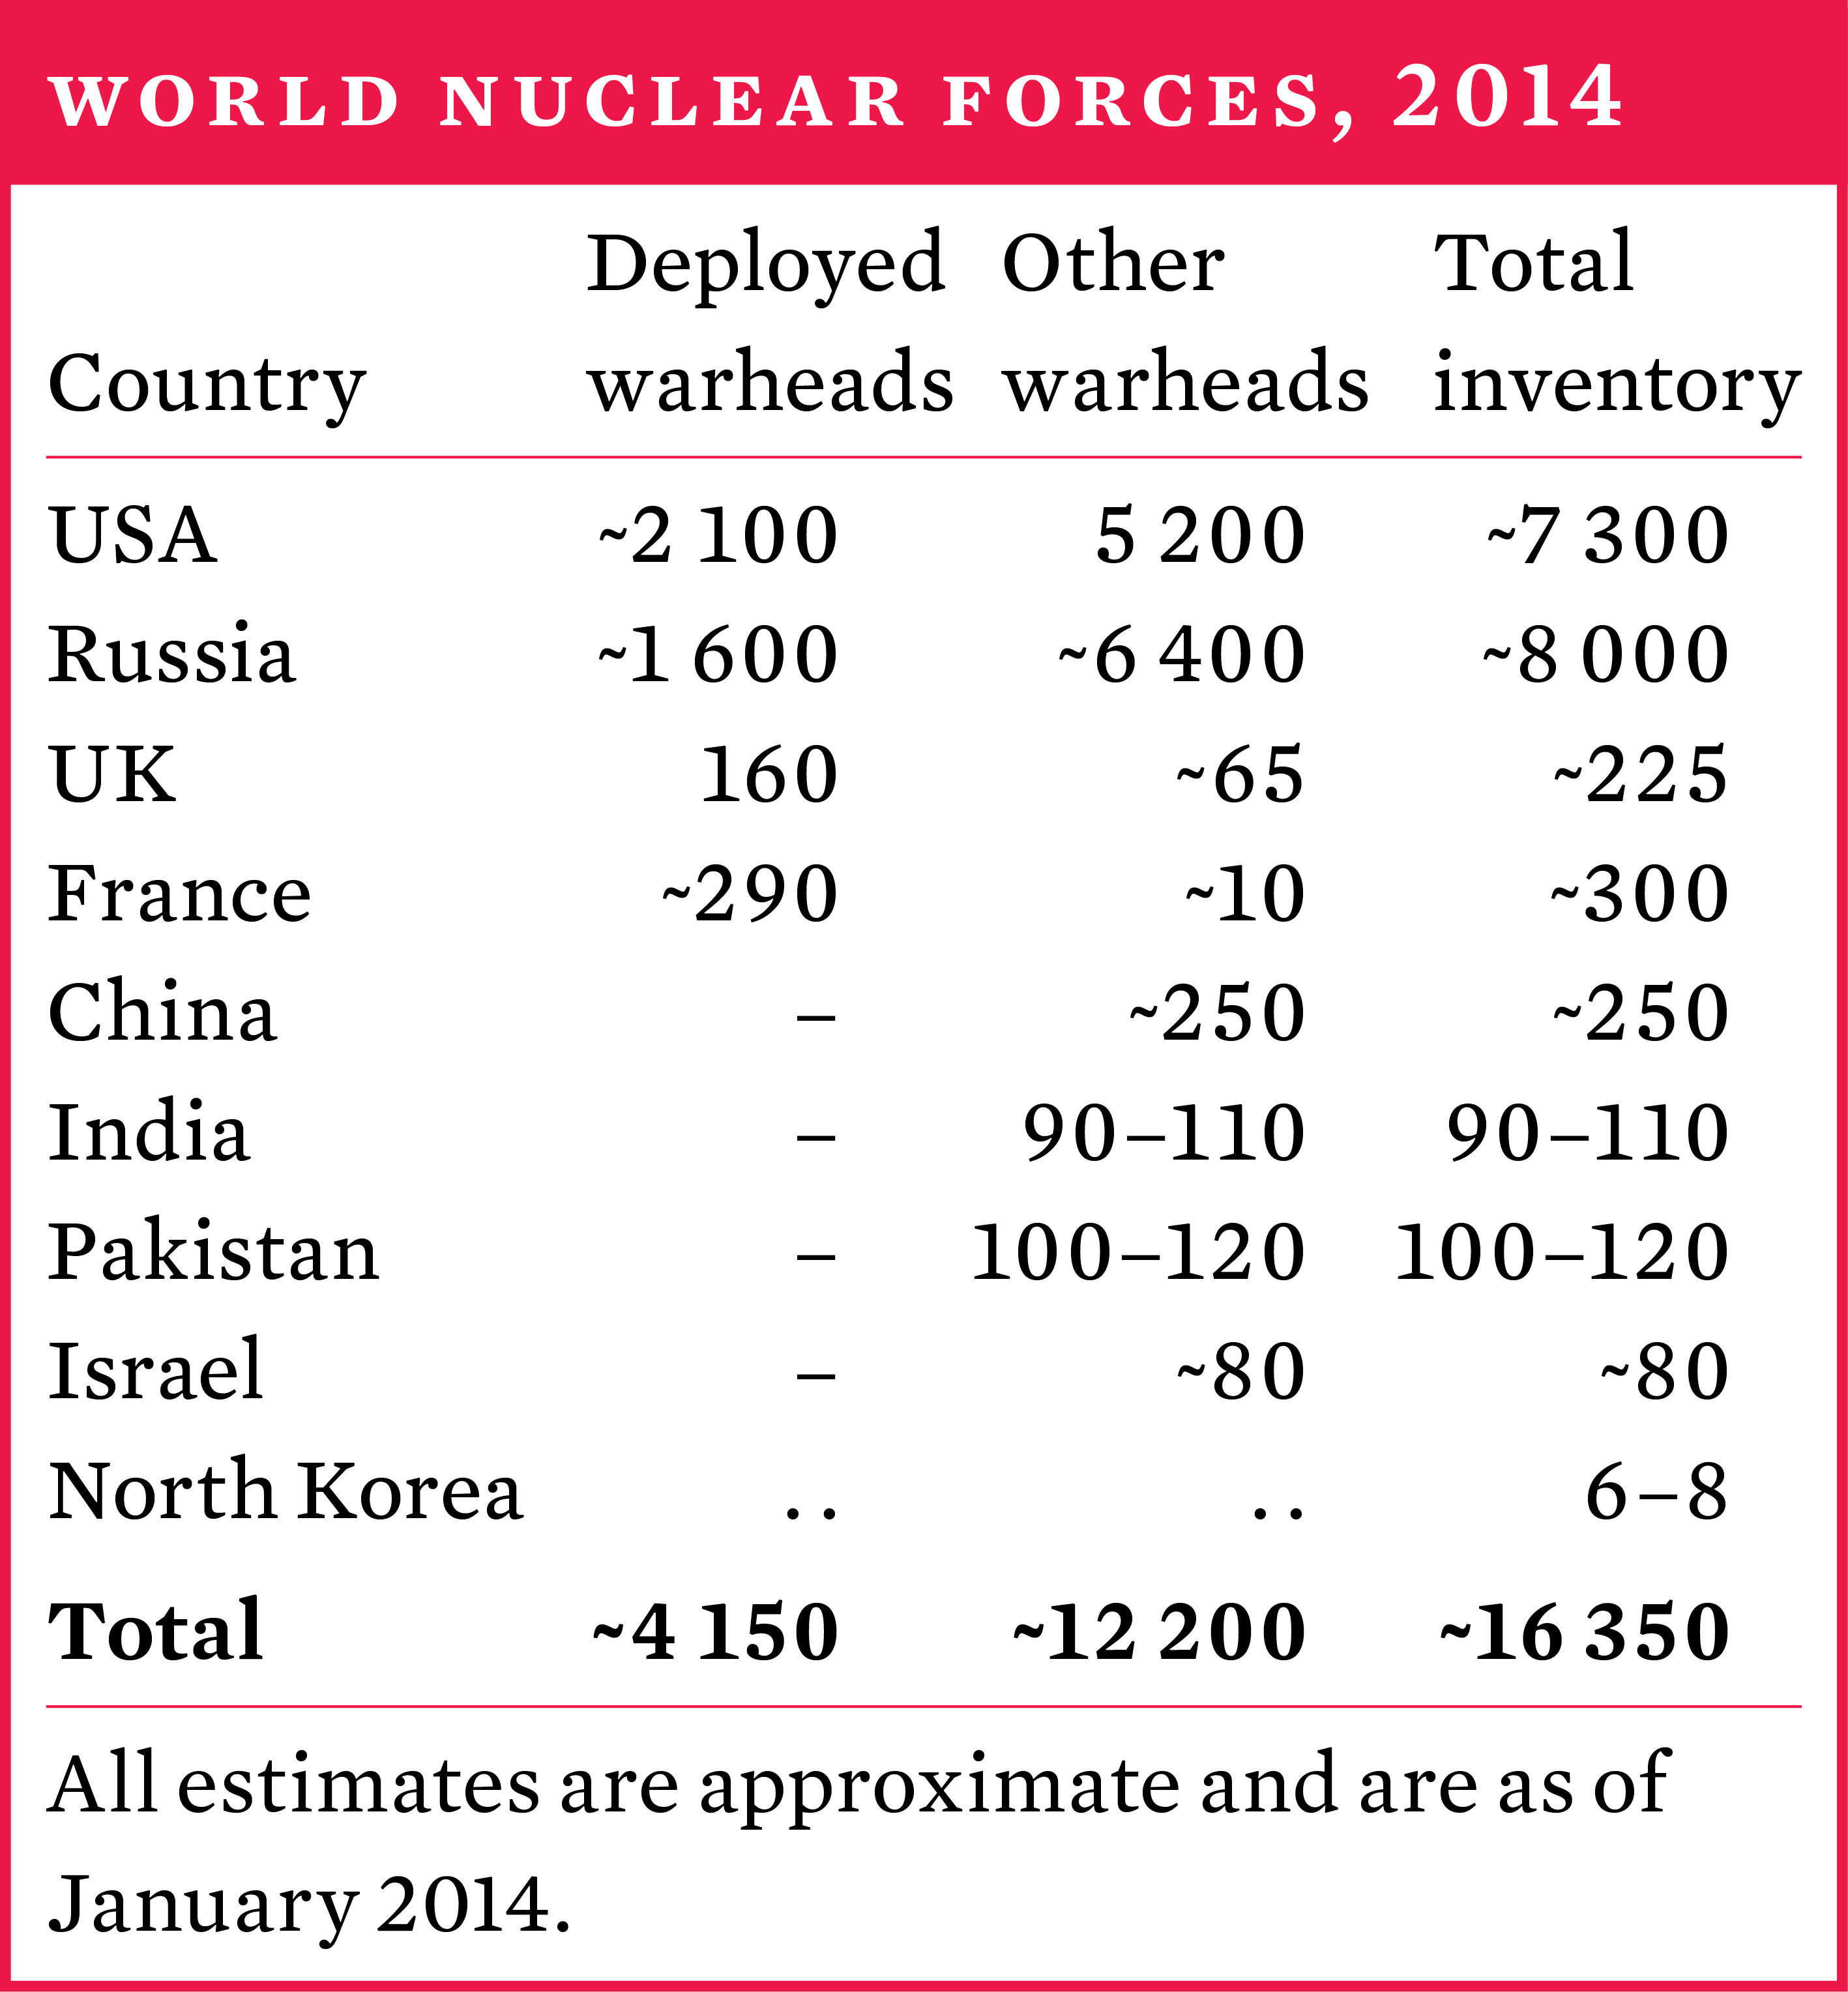 World nuclear forces, 2014